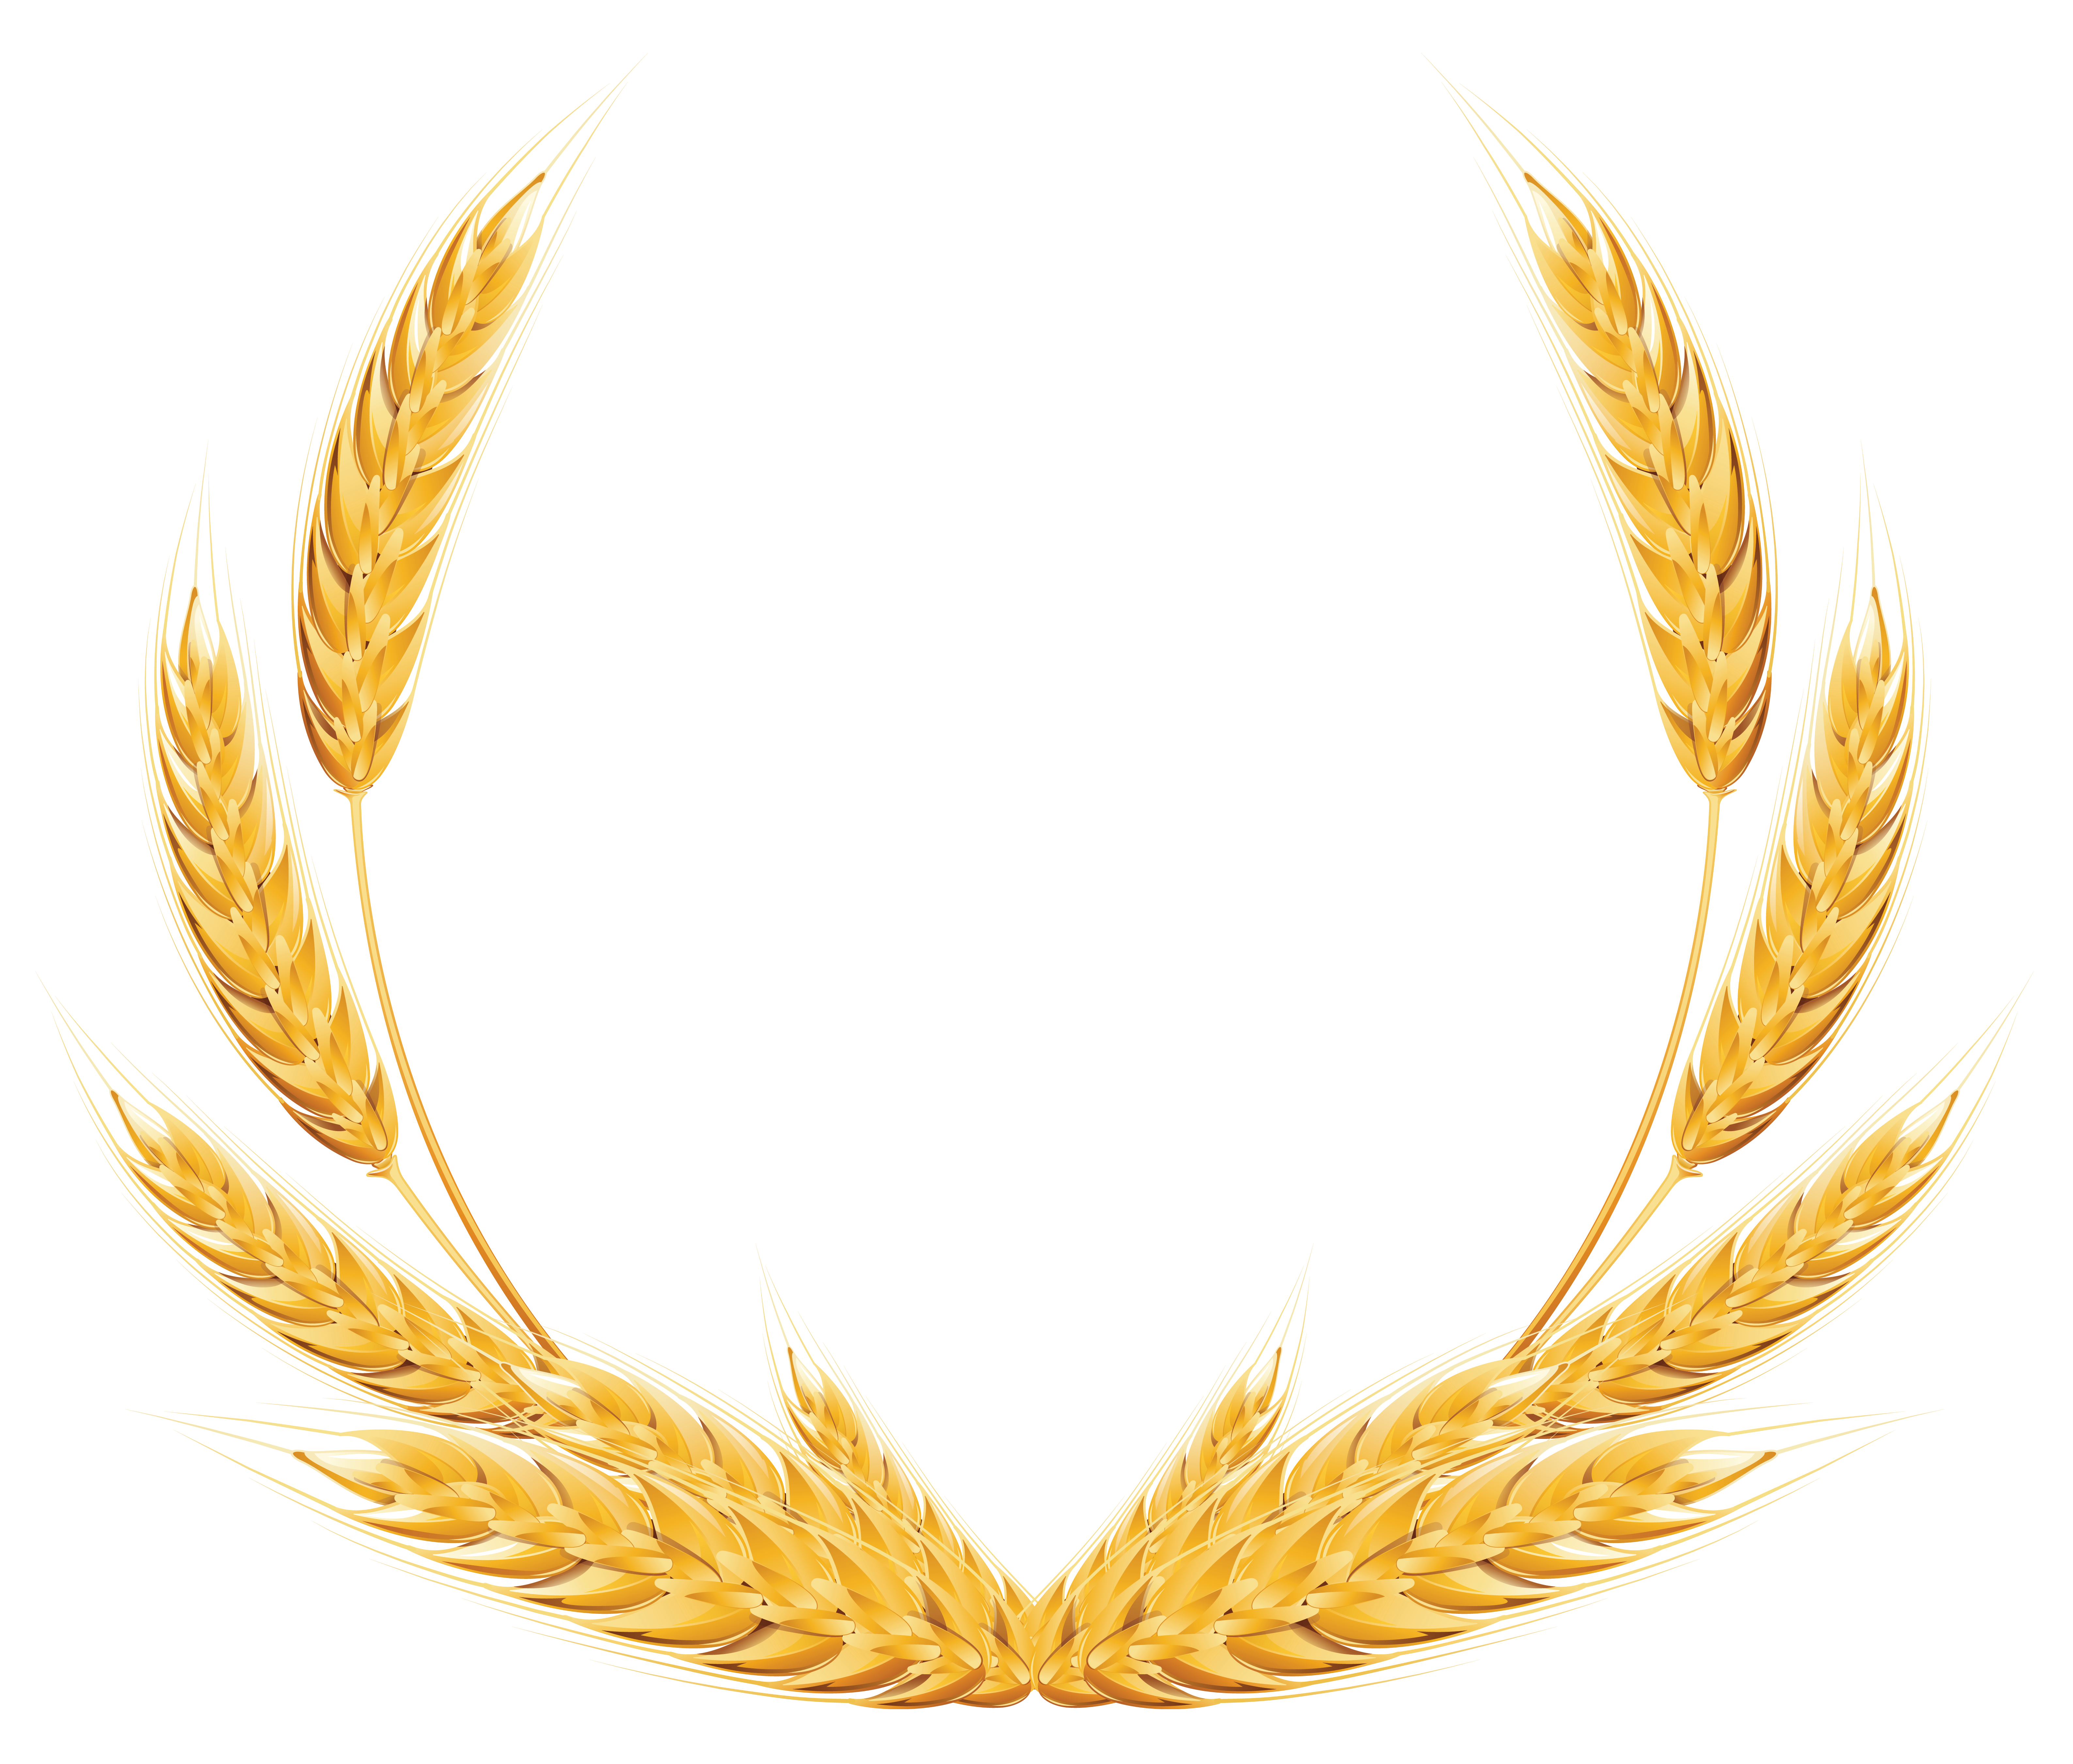 wheat clipart wheat straw